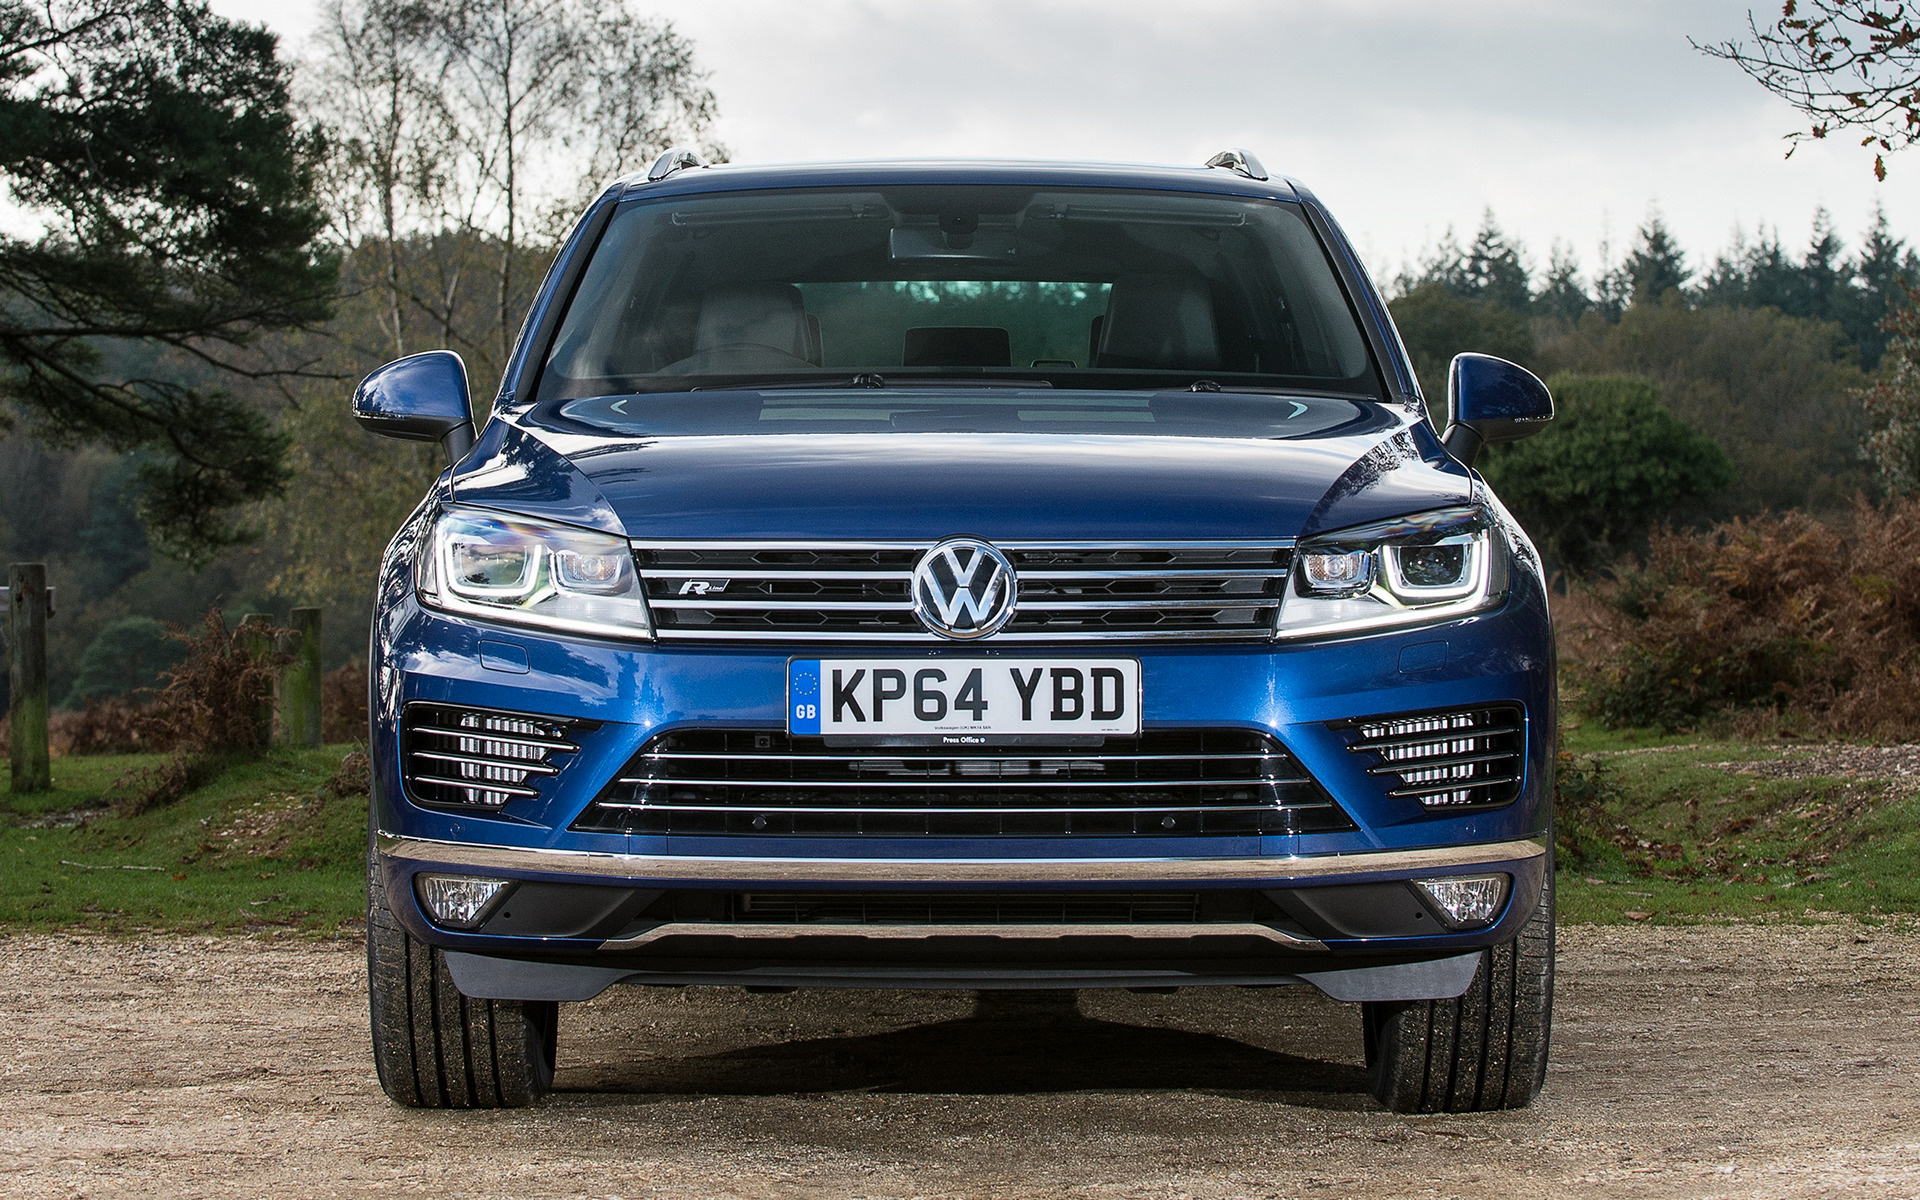 2014 Volkswagen Touareg R Line UK   Wallpapers and HD Images 1920x1200